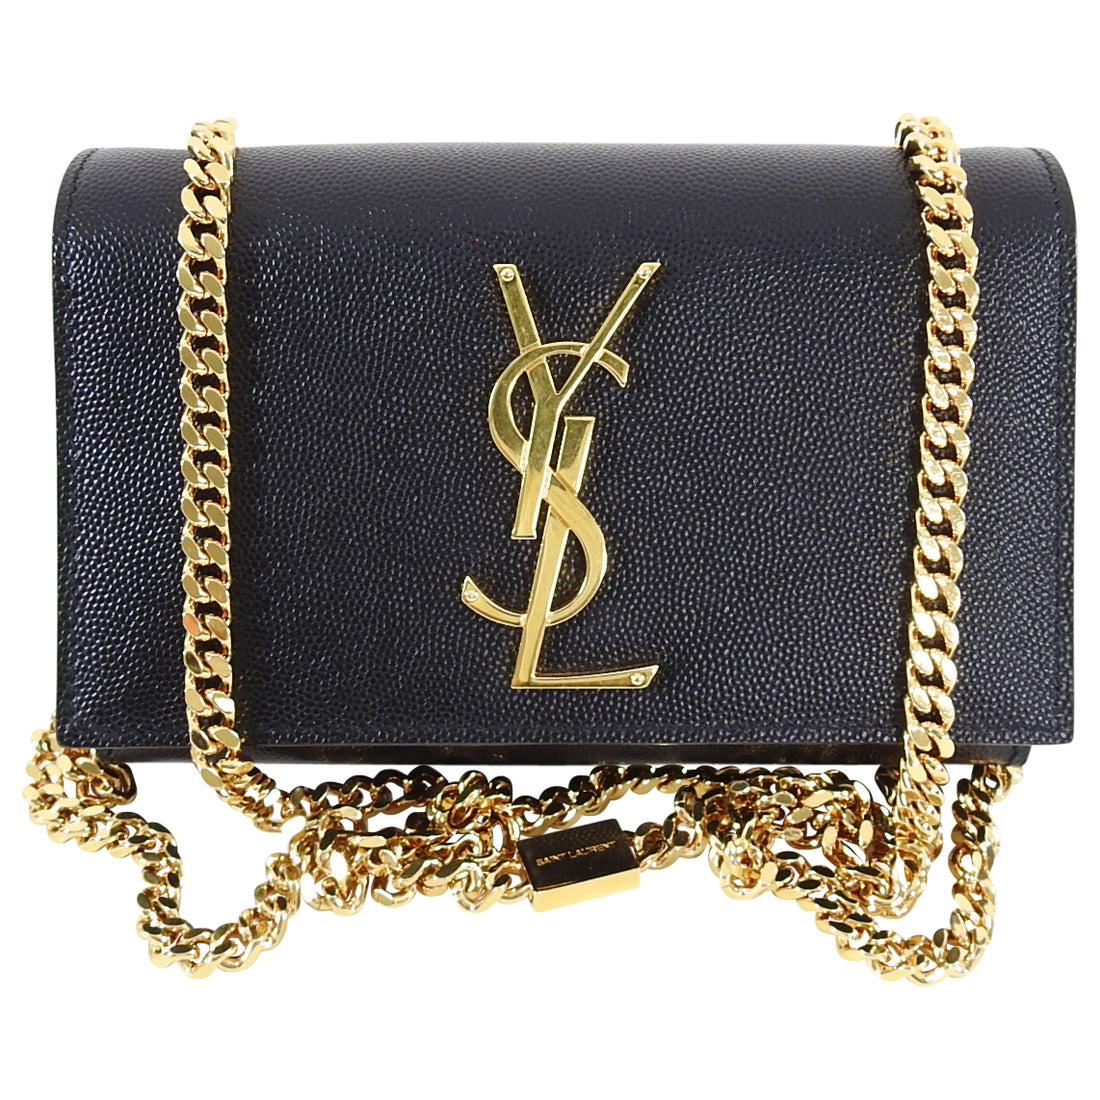 Saint Laurent Black Leather Original Small Chain Crossbody Bag